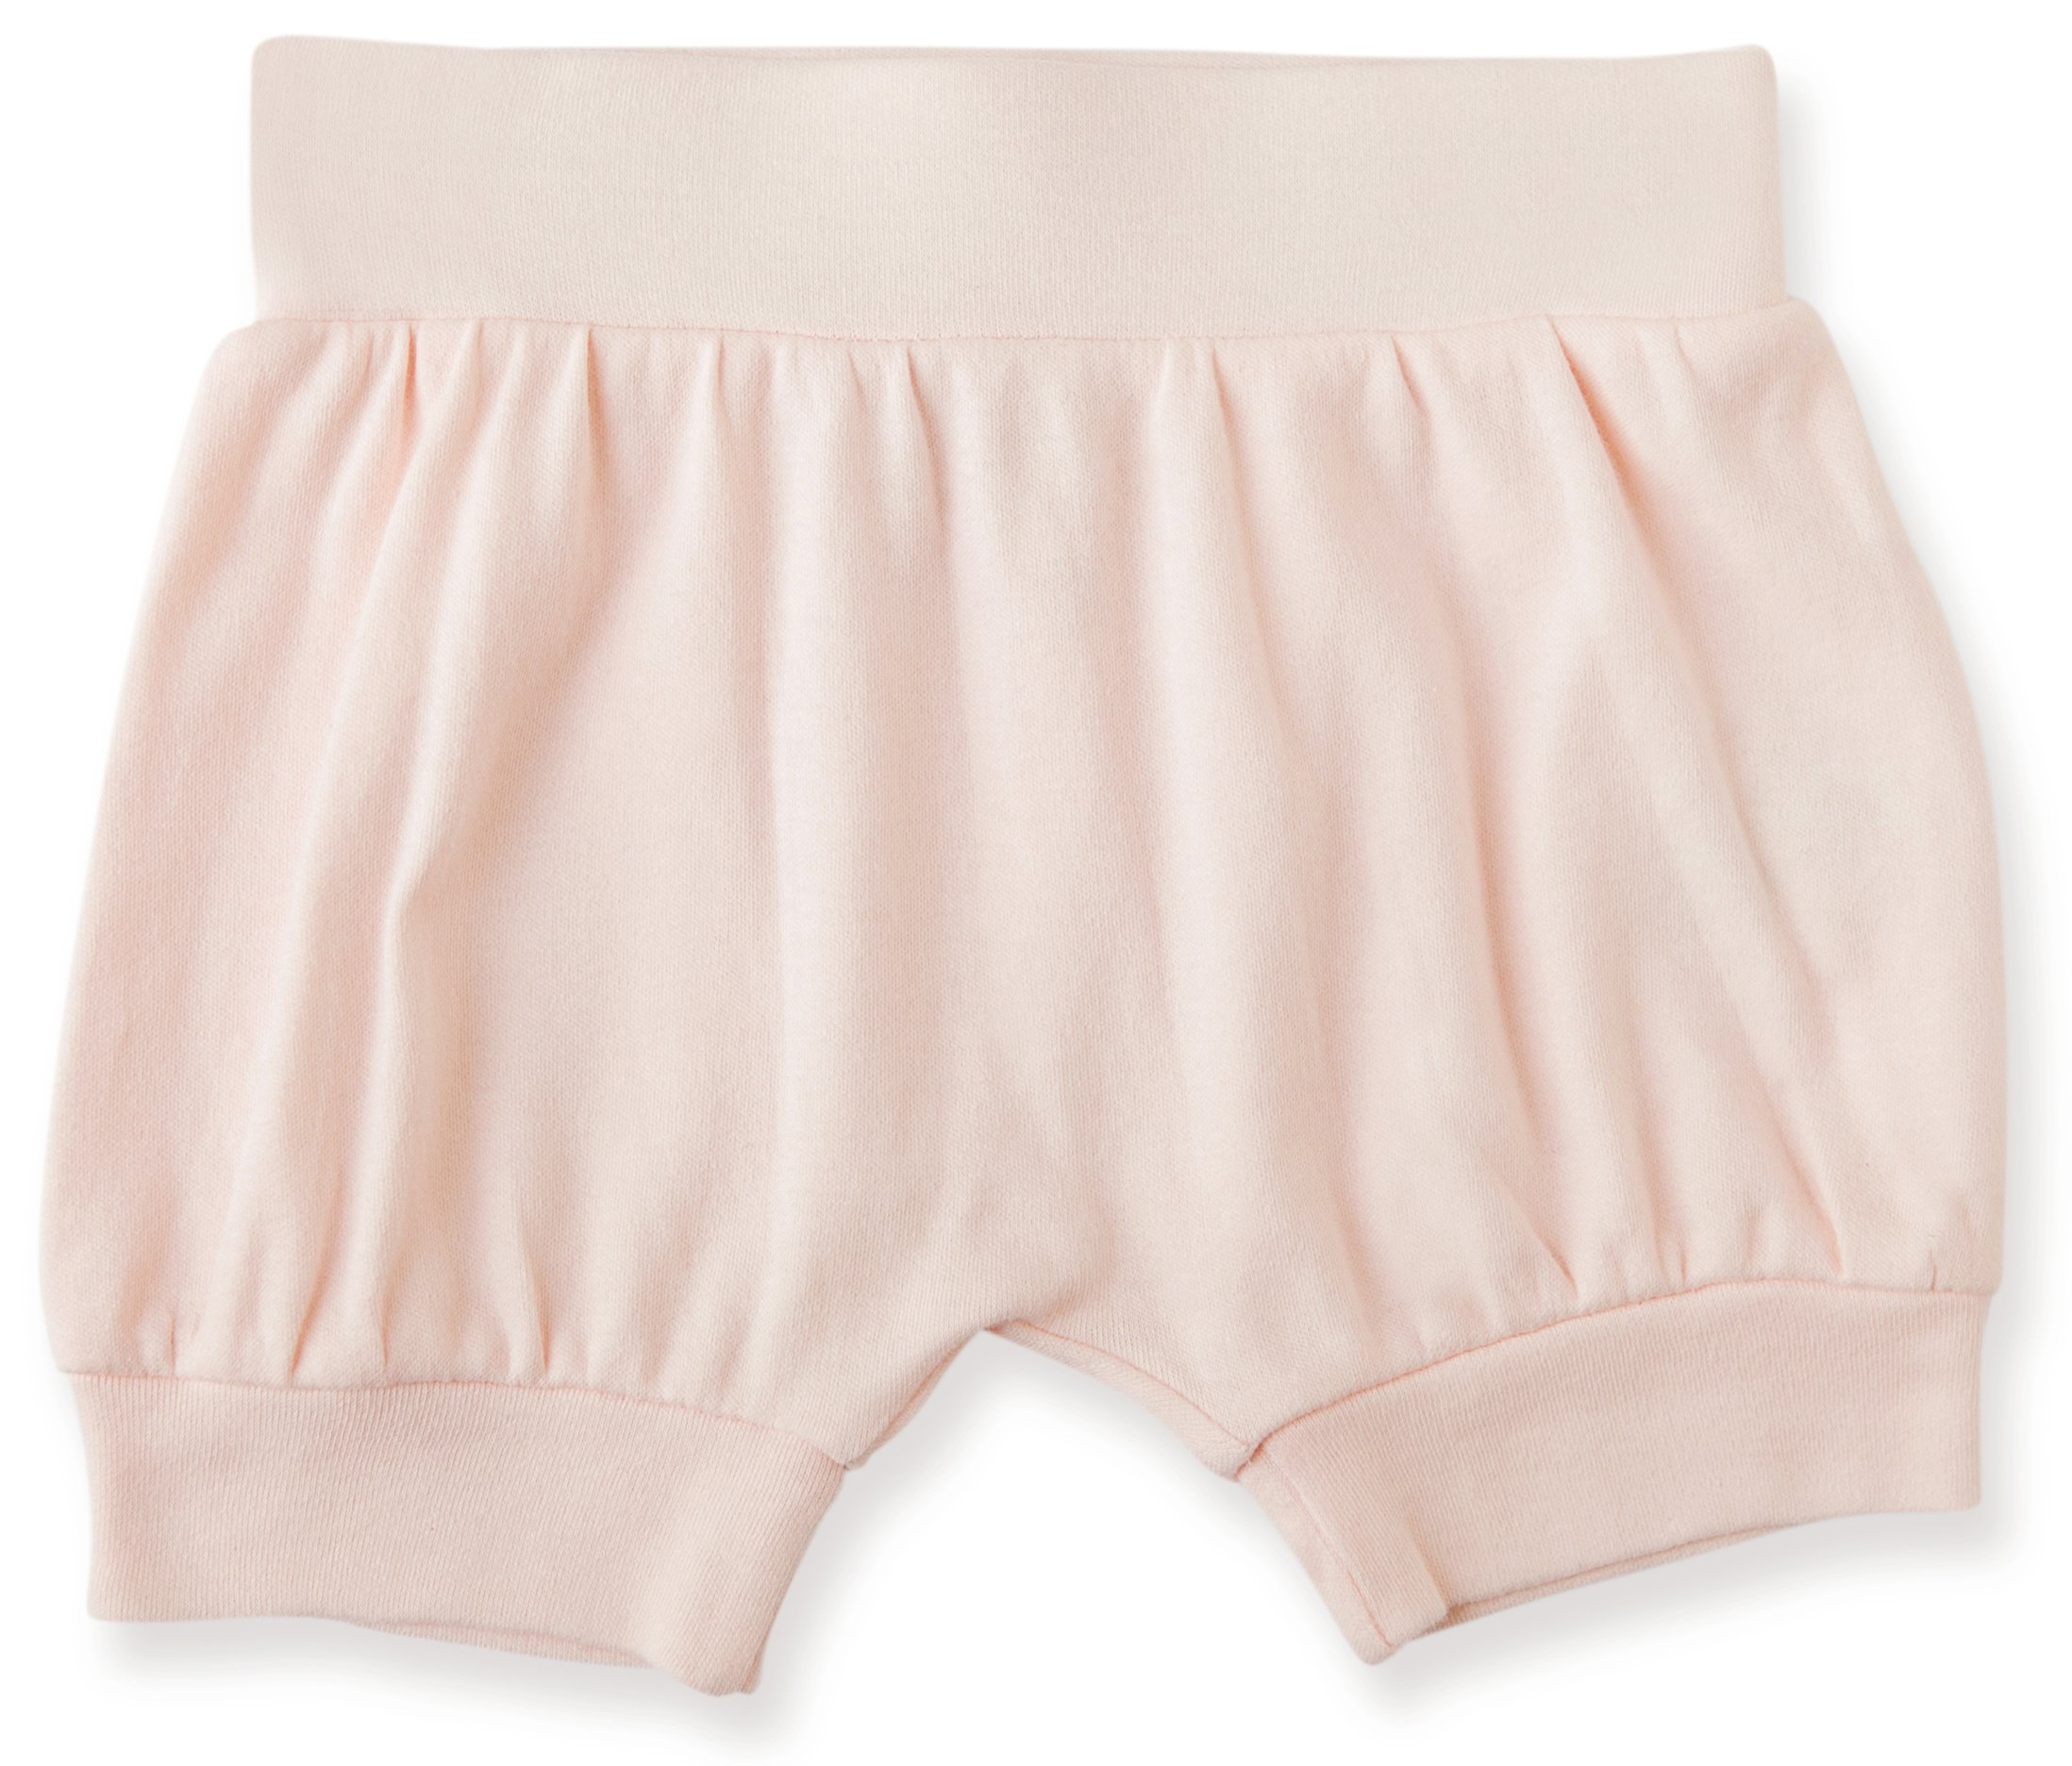 Finn + Emma Organic Cotton Shorts for Baby Boy or Girl – Pearl Pink, 0-3 Months